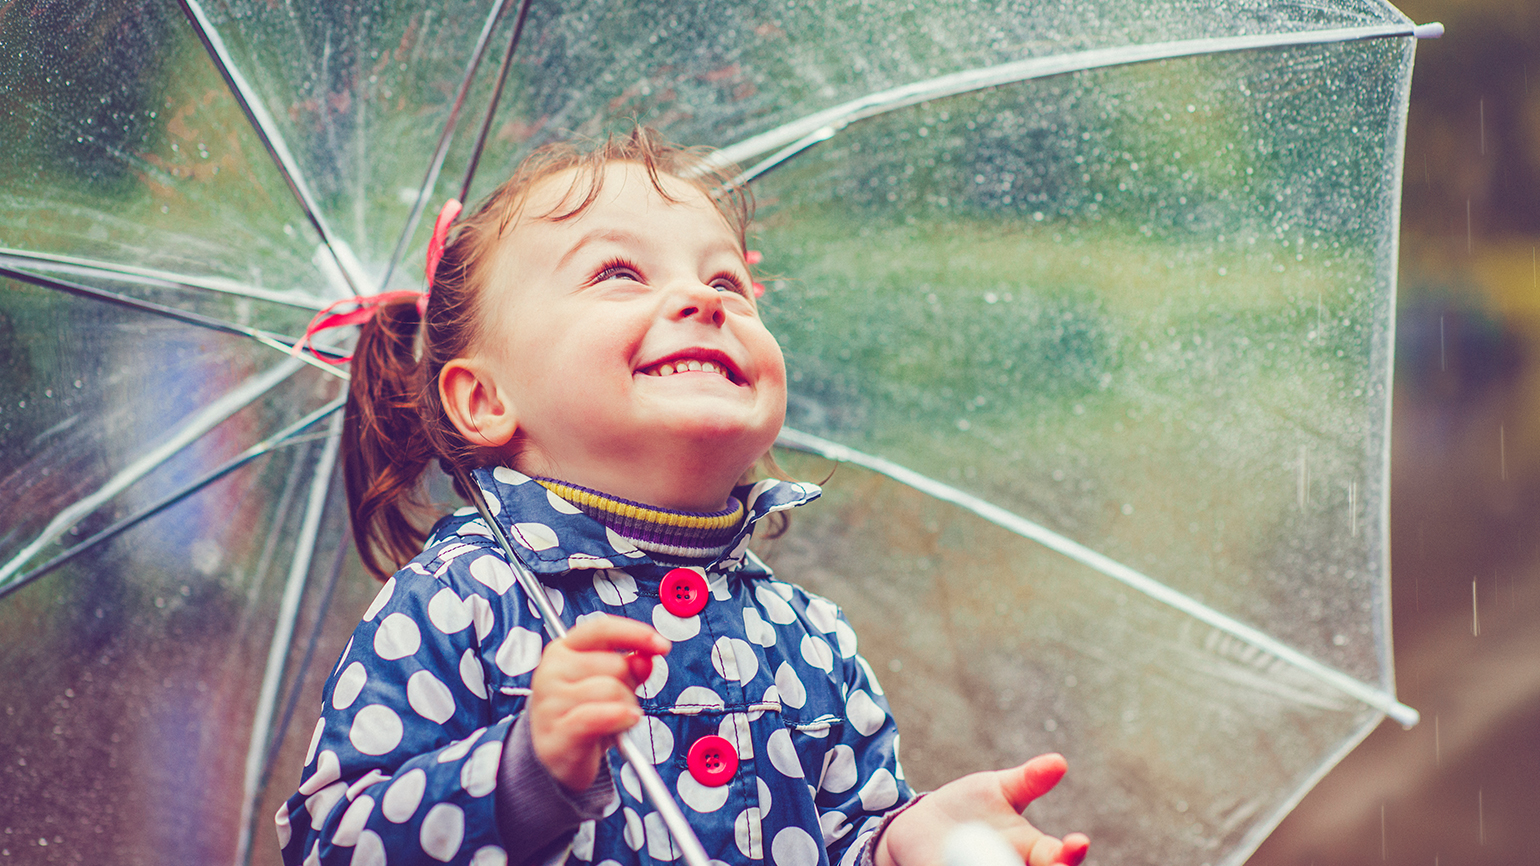 A young girl smiles up at falling raindrops from under an umbrella